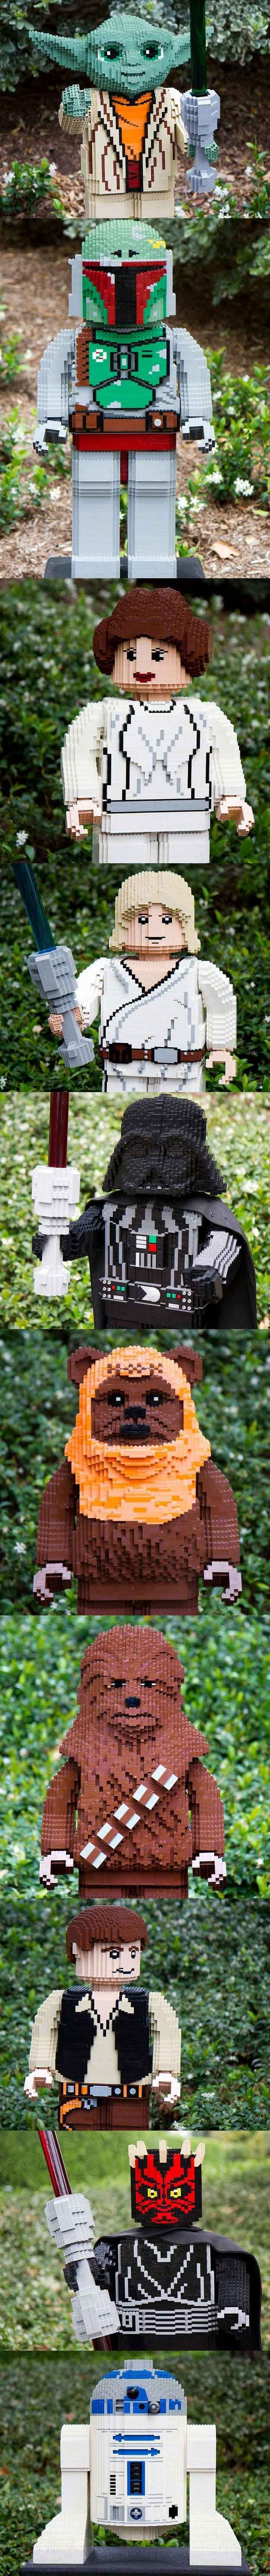 Awesome DIY Lego Star Wars Ideas and Inspiration | Star Wars in Lego by DIY Ready at http://diyready.com/11-diy-lego-star-wars-ideas/